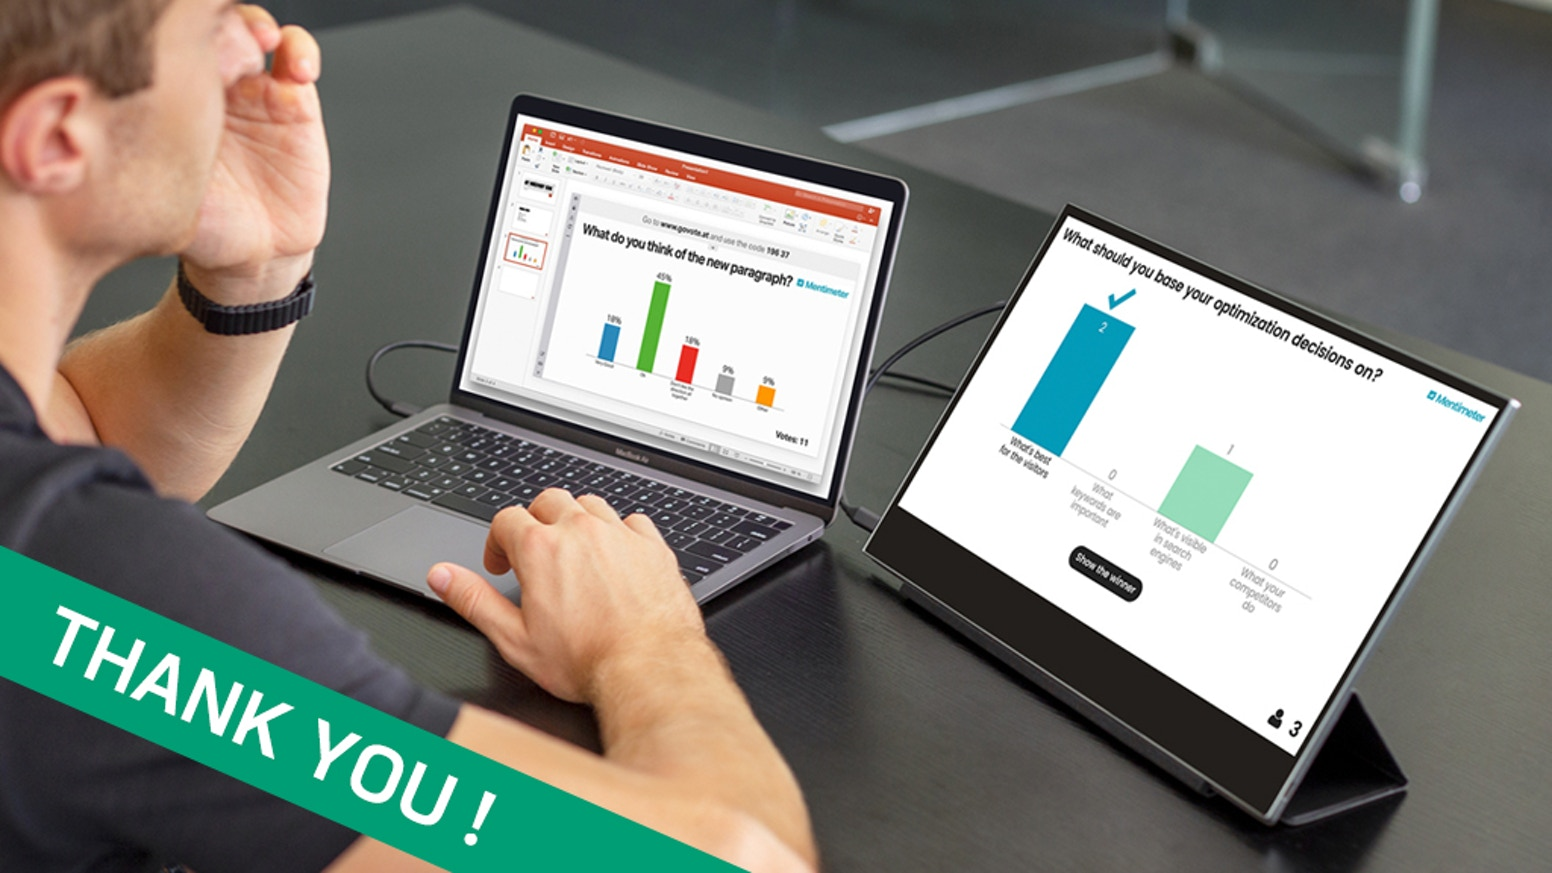 """Weighing only 1.1 lb, AirTab is a reinvented 15.6"""" portable monitor that maximizes your productivity wherever you are."""